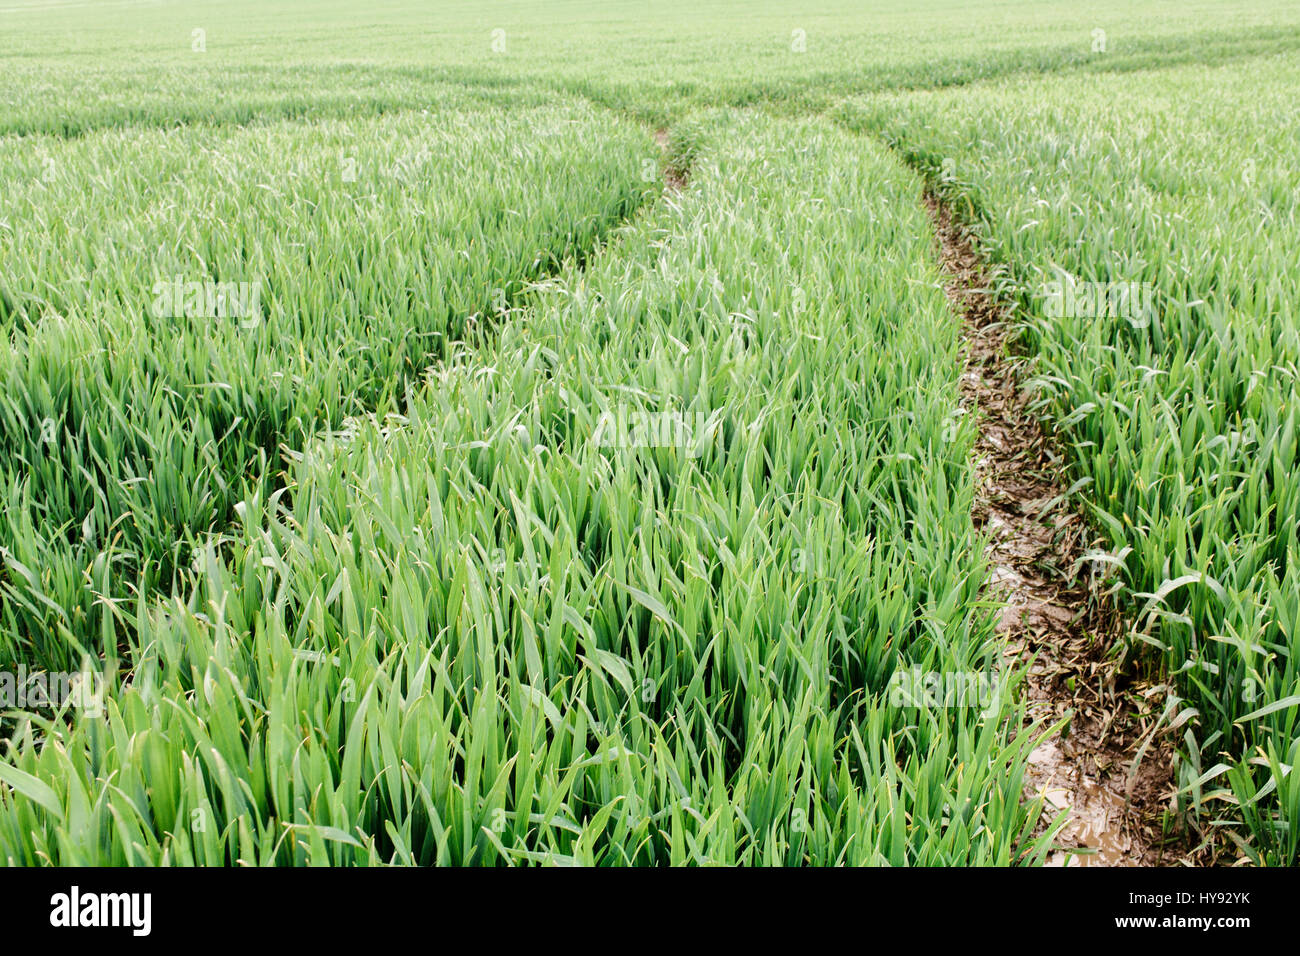 Abstract view of tracks in a field of crops. - Stock Image